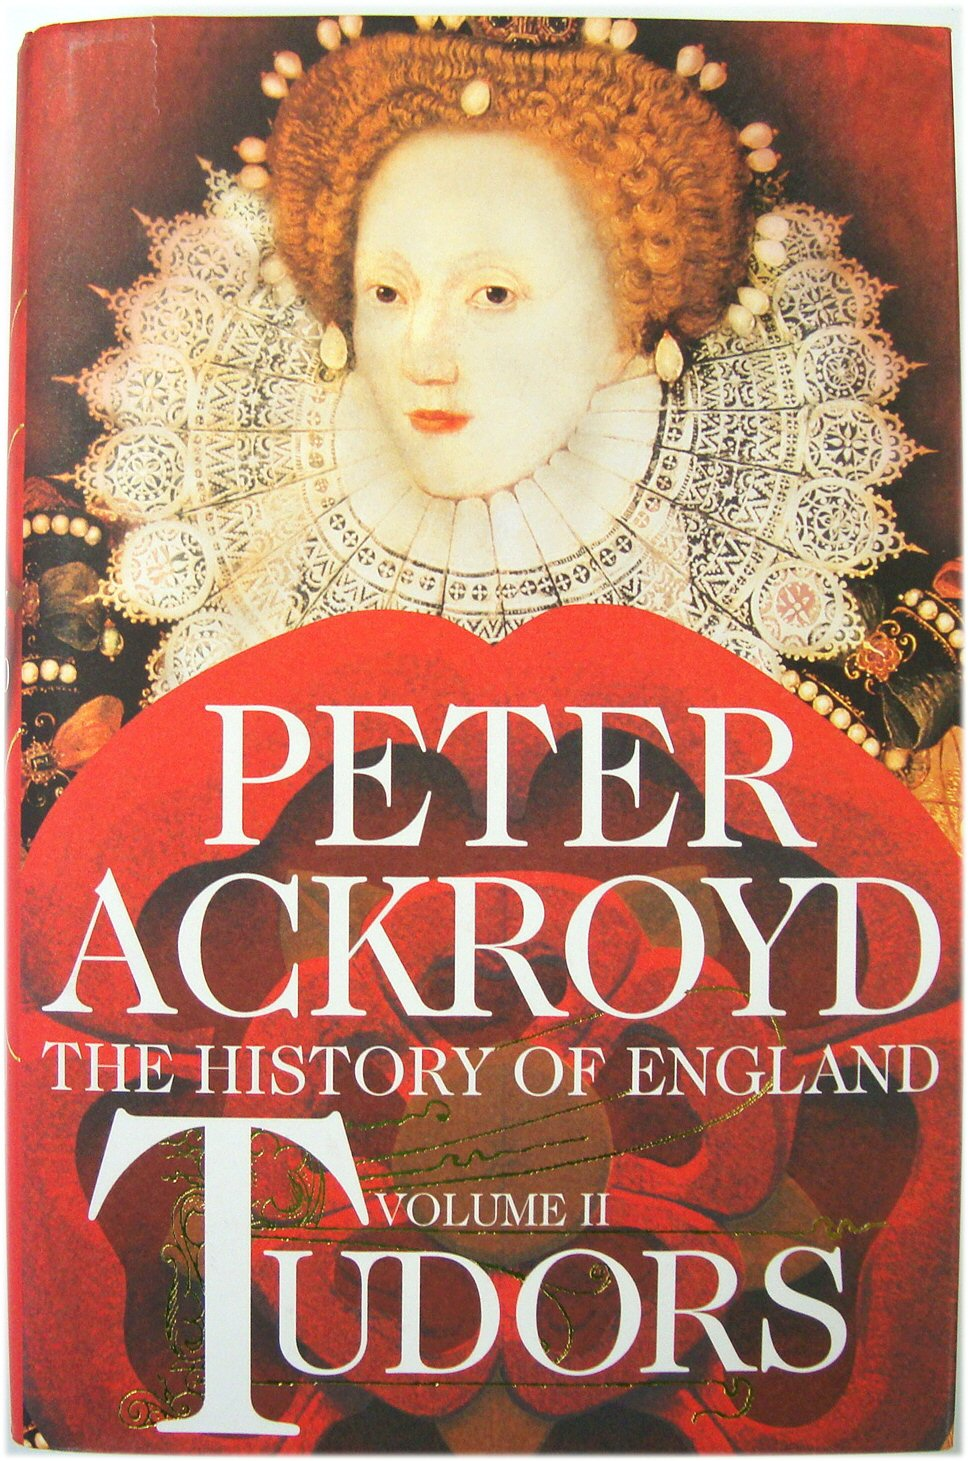 Image for The History of England: Volume II the Tudors